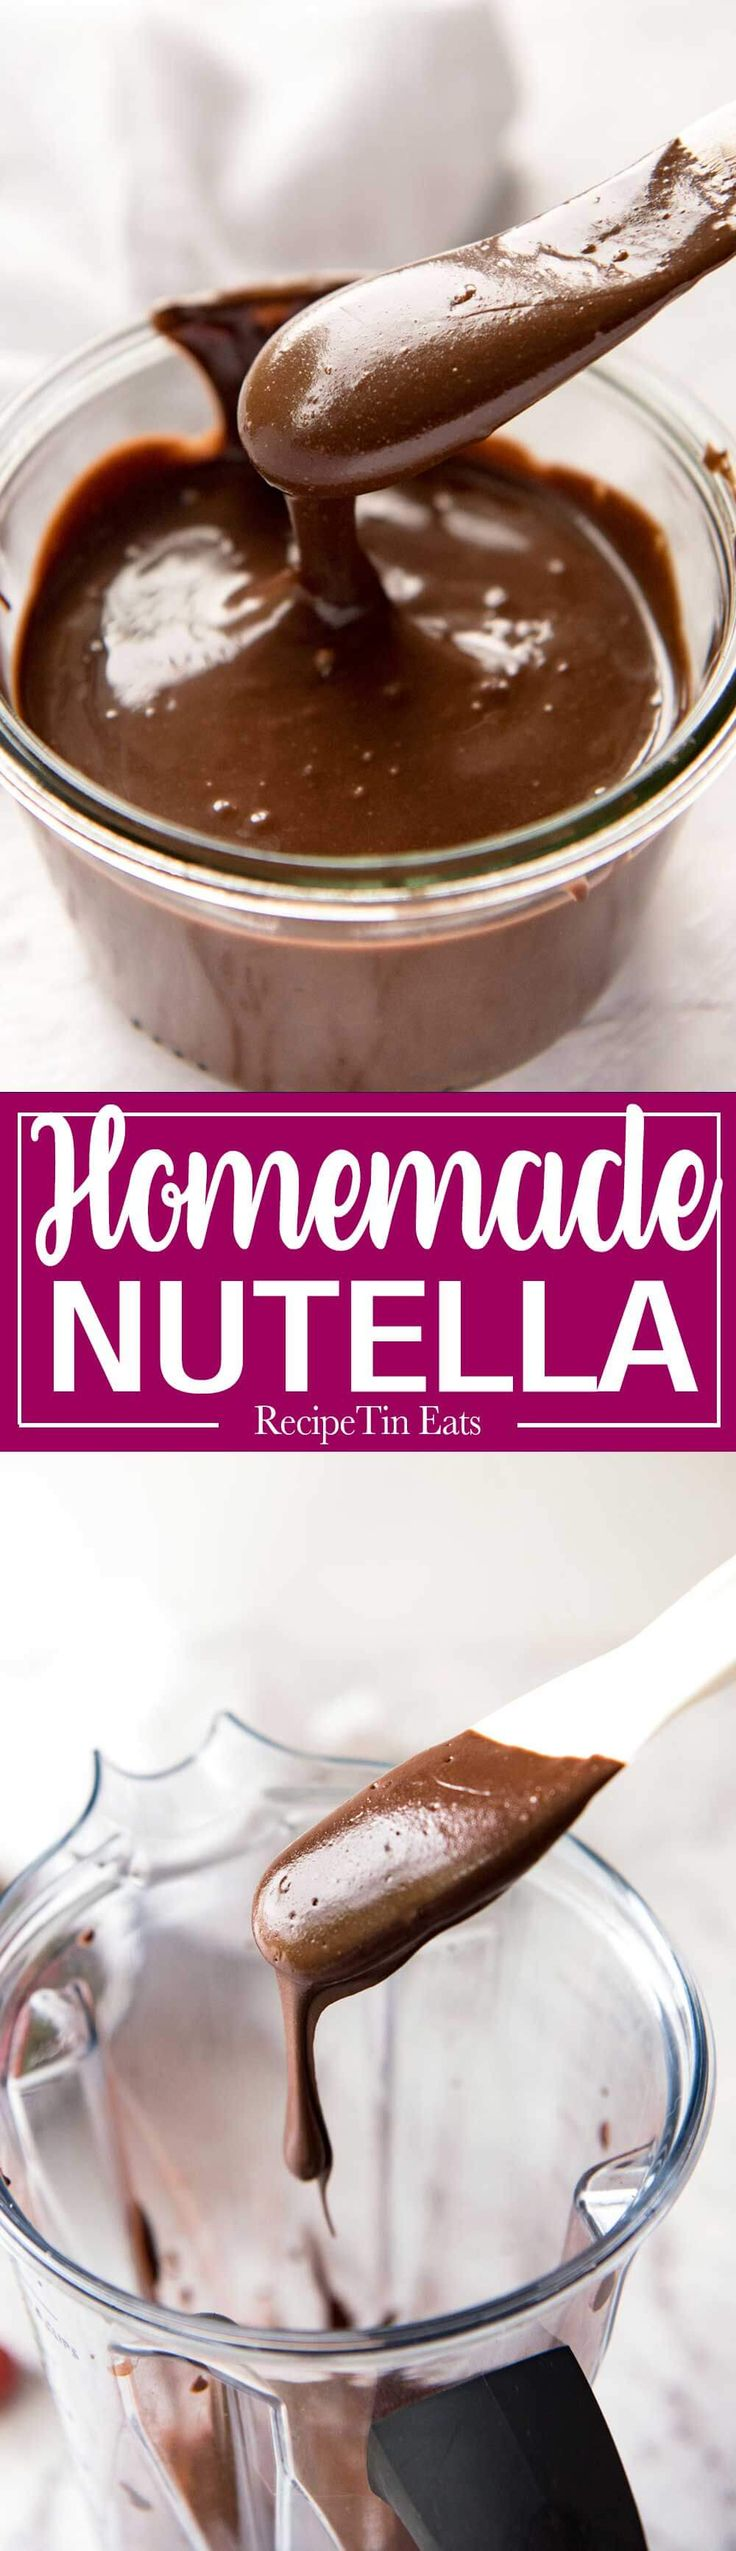 Homemade Nutella - Just hazelnuts, cocoa powder, confectionary / icing sugar, oil, vanilla and your blender is all you need to make an incredible blender at home! www.recipetineats.com